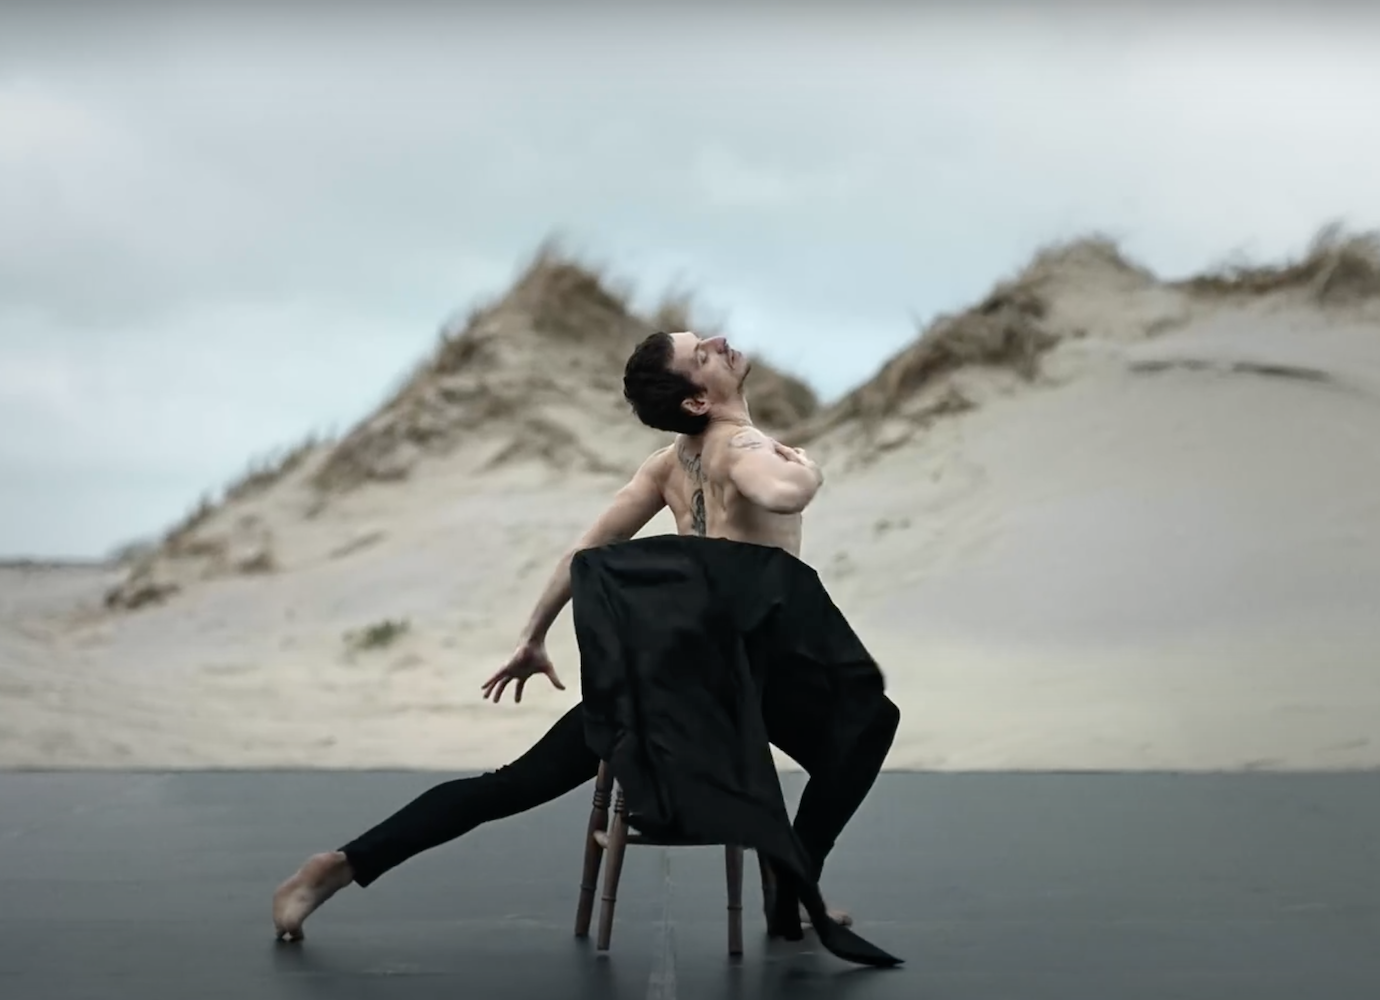 Sergei Polunin returns to the screen withnew clip dancing to Depeche Mode